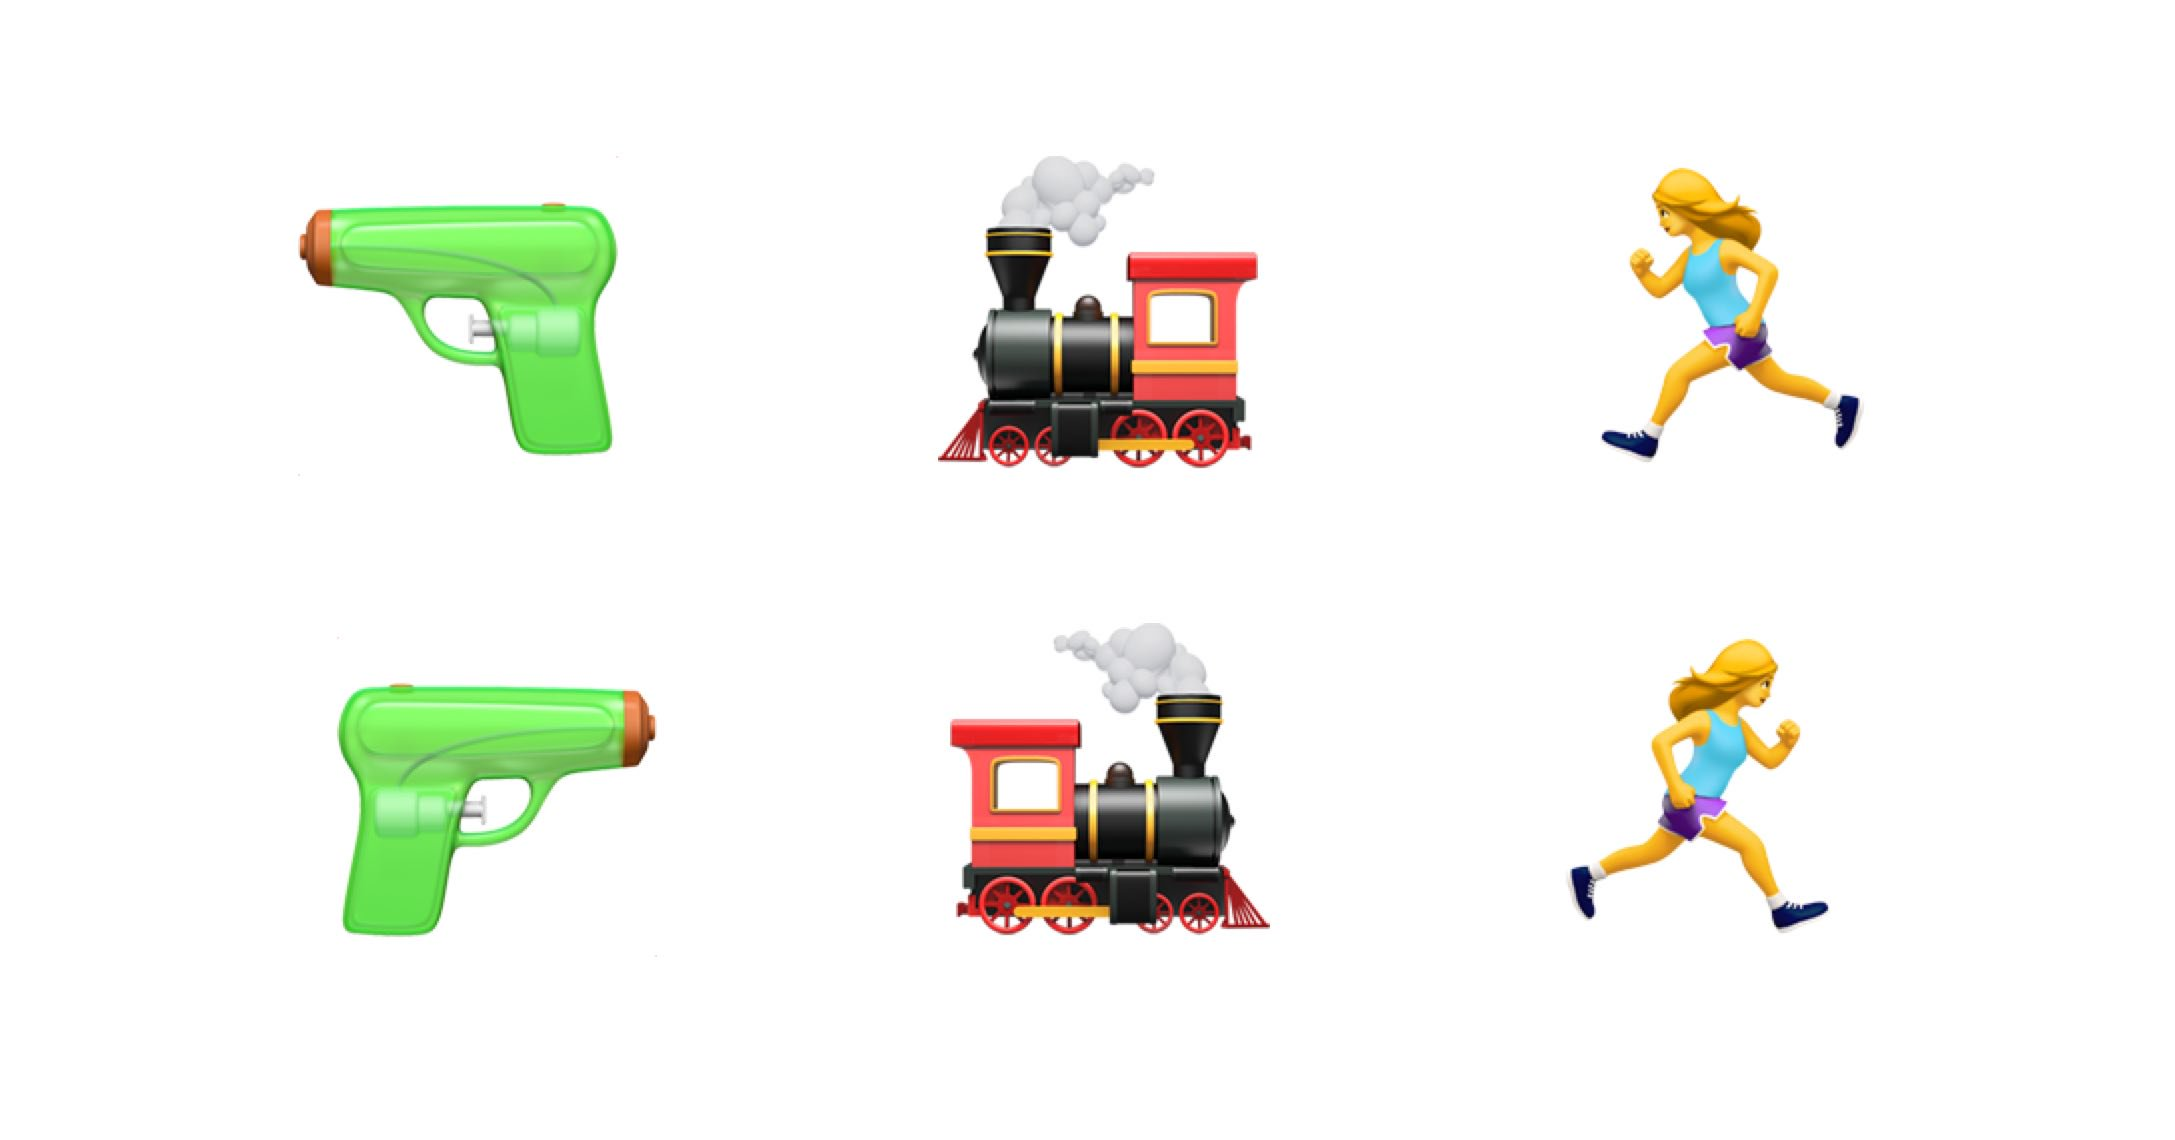 New iOS 12 Emojis Coming In 2018